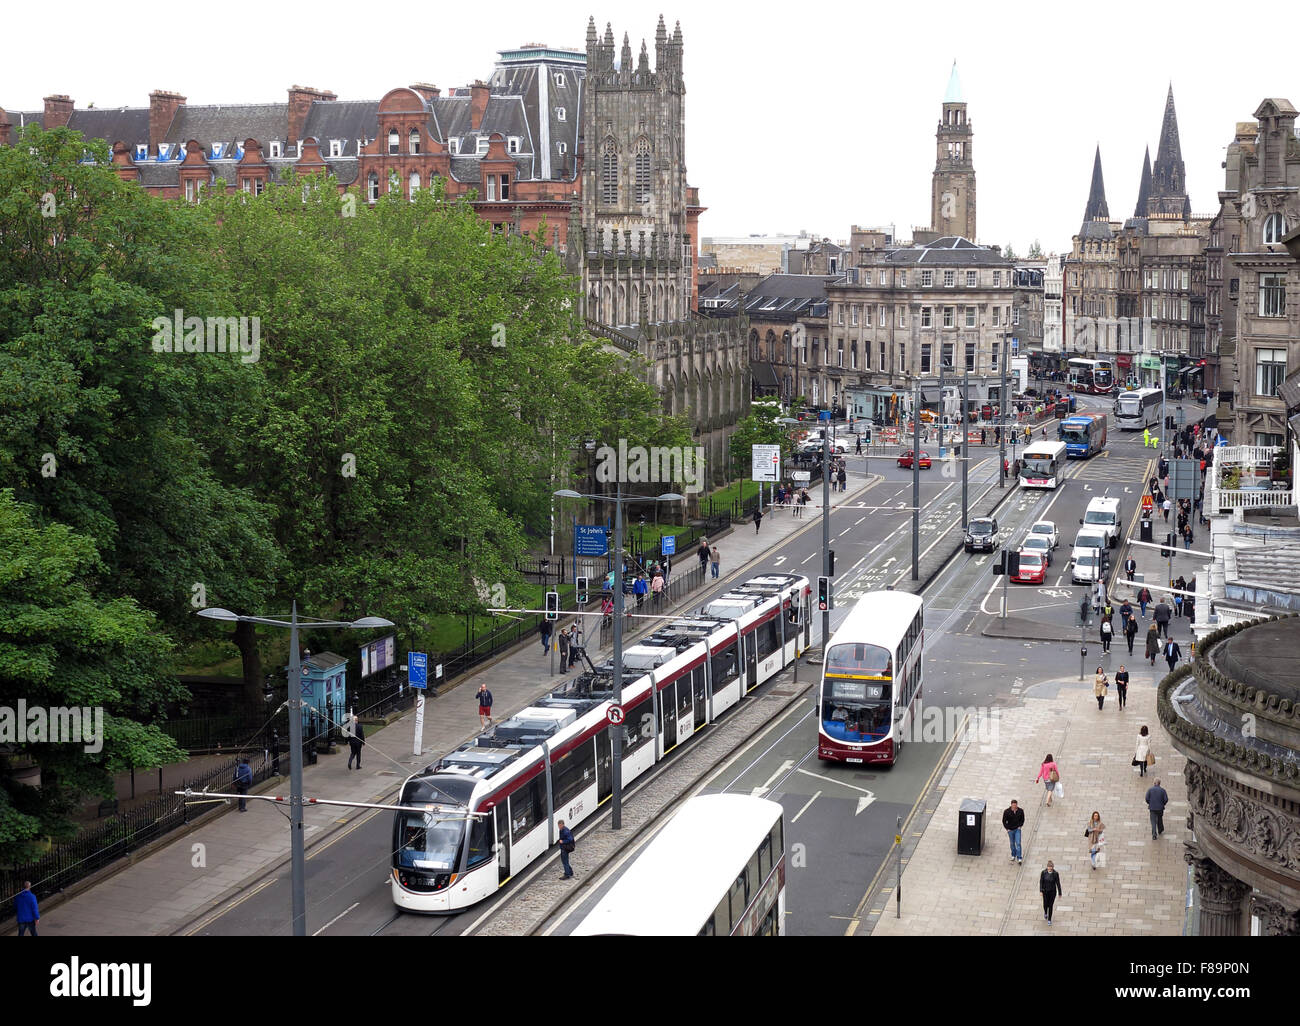 Westend,street,city,centre,Lothian,buses,tram,bus,street,2015,Edinburgh,Scotland,UK,airport,capital,above,architecture,tourist,tourism,attraction,british,people,pedestrians,road,scene,Princes St,Princes Street,city centre,West End,Airport Tram,british culture,GoTonySmith,elevated view,europe,european,heritage,shopping,shops,automobile,coach,double,decker,Buy Pictures of,Buy Images Of,european culture,Shopping Street